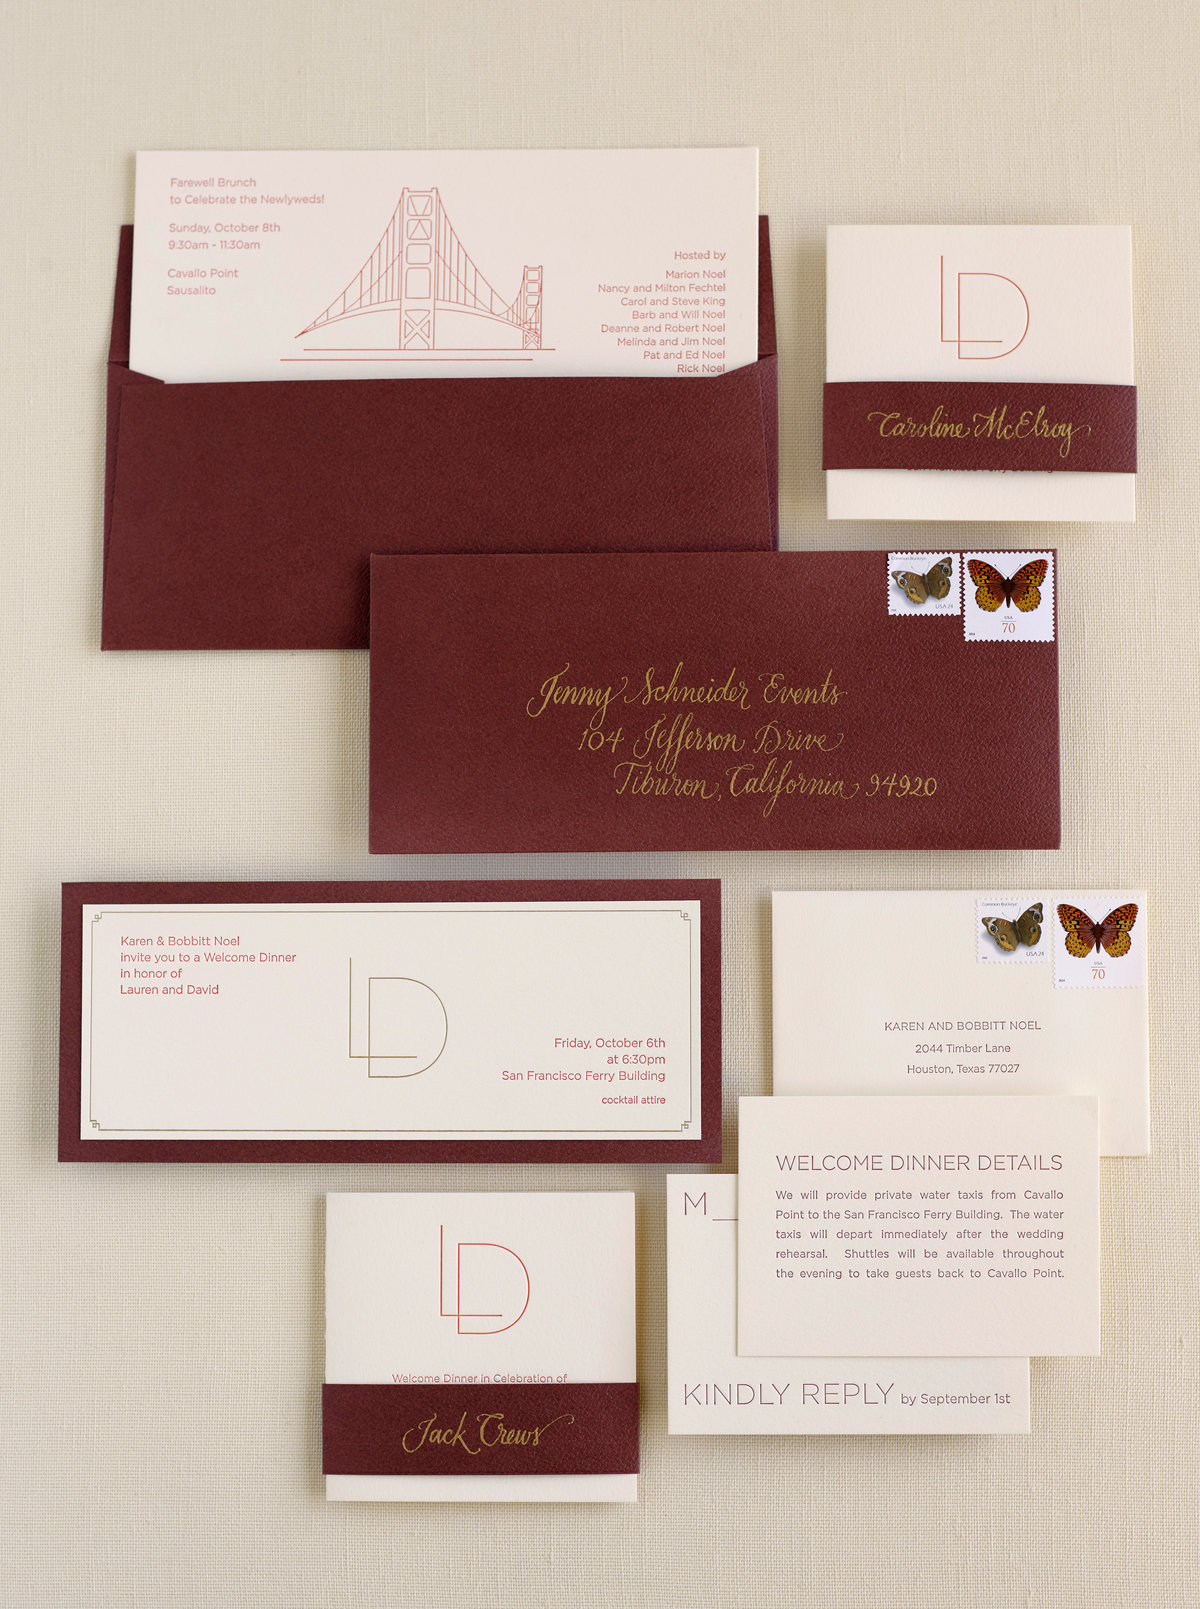 Invitation for wedding welcome dinner by Jenny Schneider Events at the San Francisco Ferry Buidling. Photo by Lacie Hansen Photography.